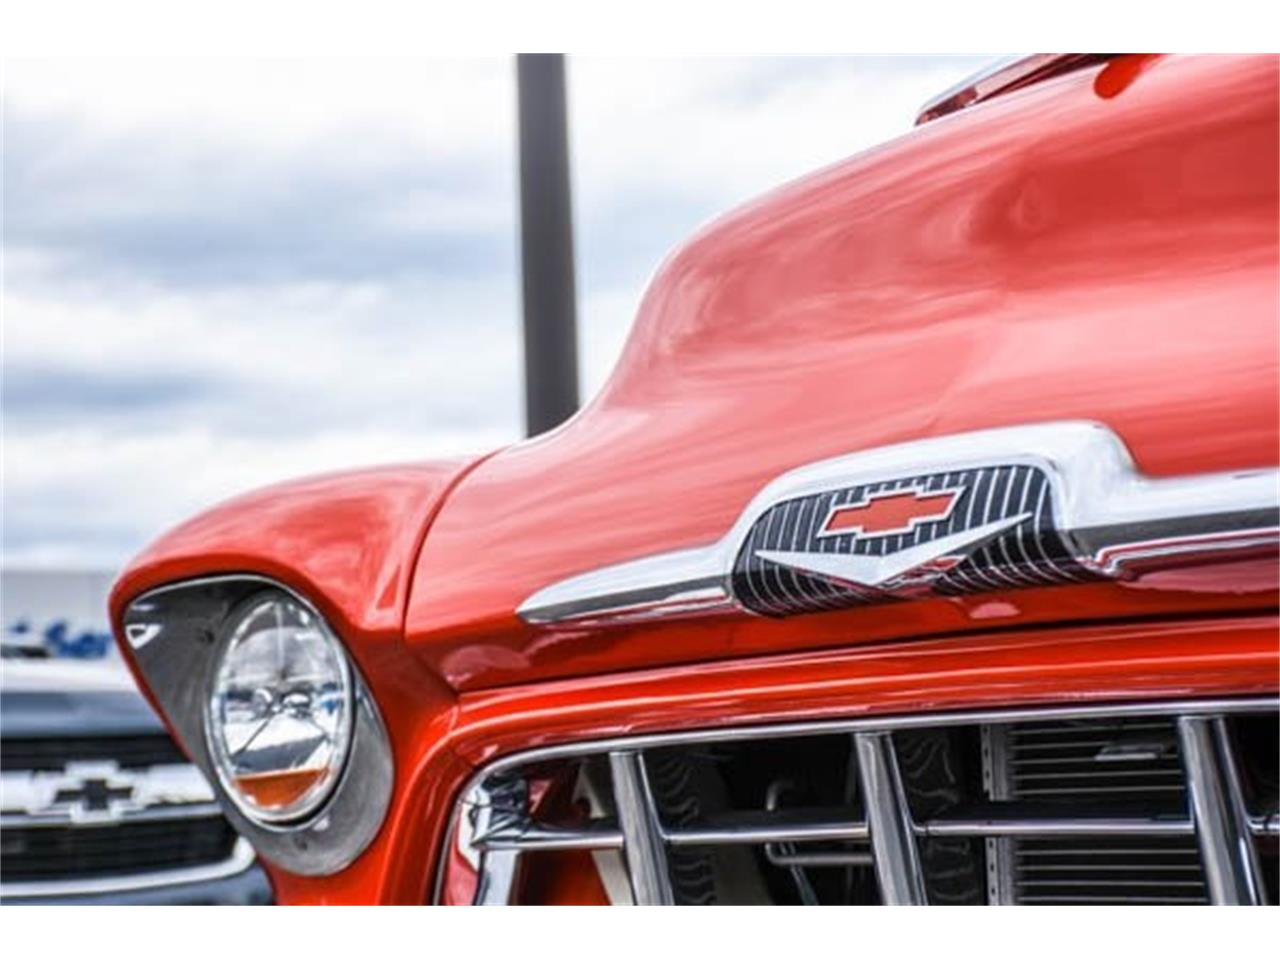 Large Picture of Classic '56 Chevrolet Cameo located in South Carolina - $57,995.00 Offered by Jud Kuhn Chevrolet - PTQJ